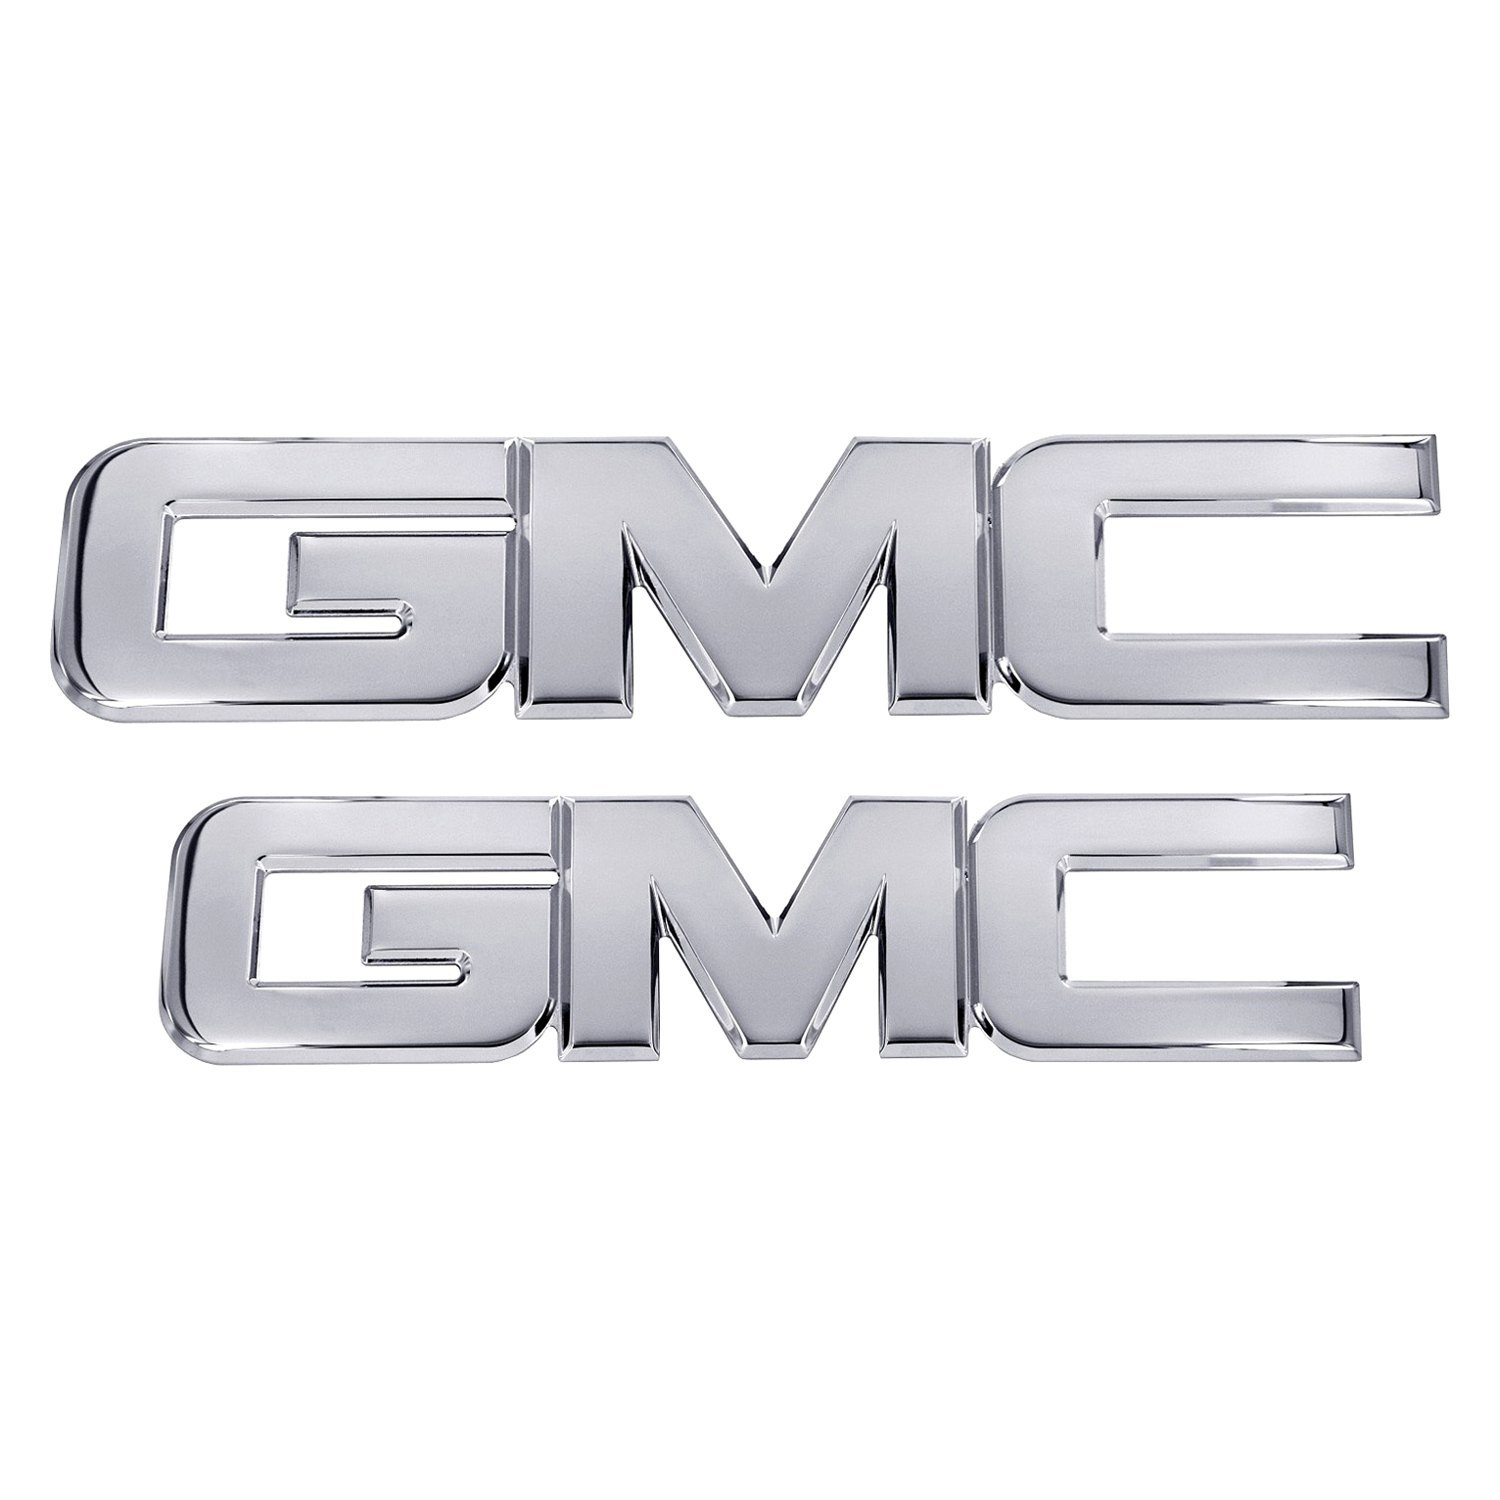 style polished grille and tailgate emblemsami gmc style black powder coated grille and tailgate emblemsami gmc style polished grille emblemami